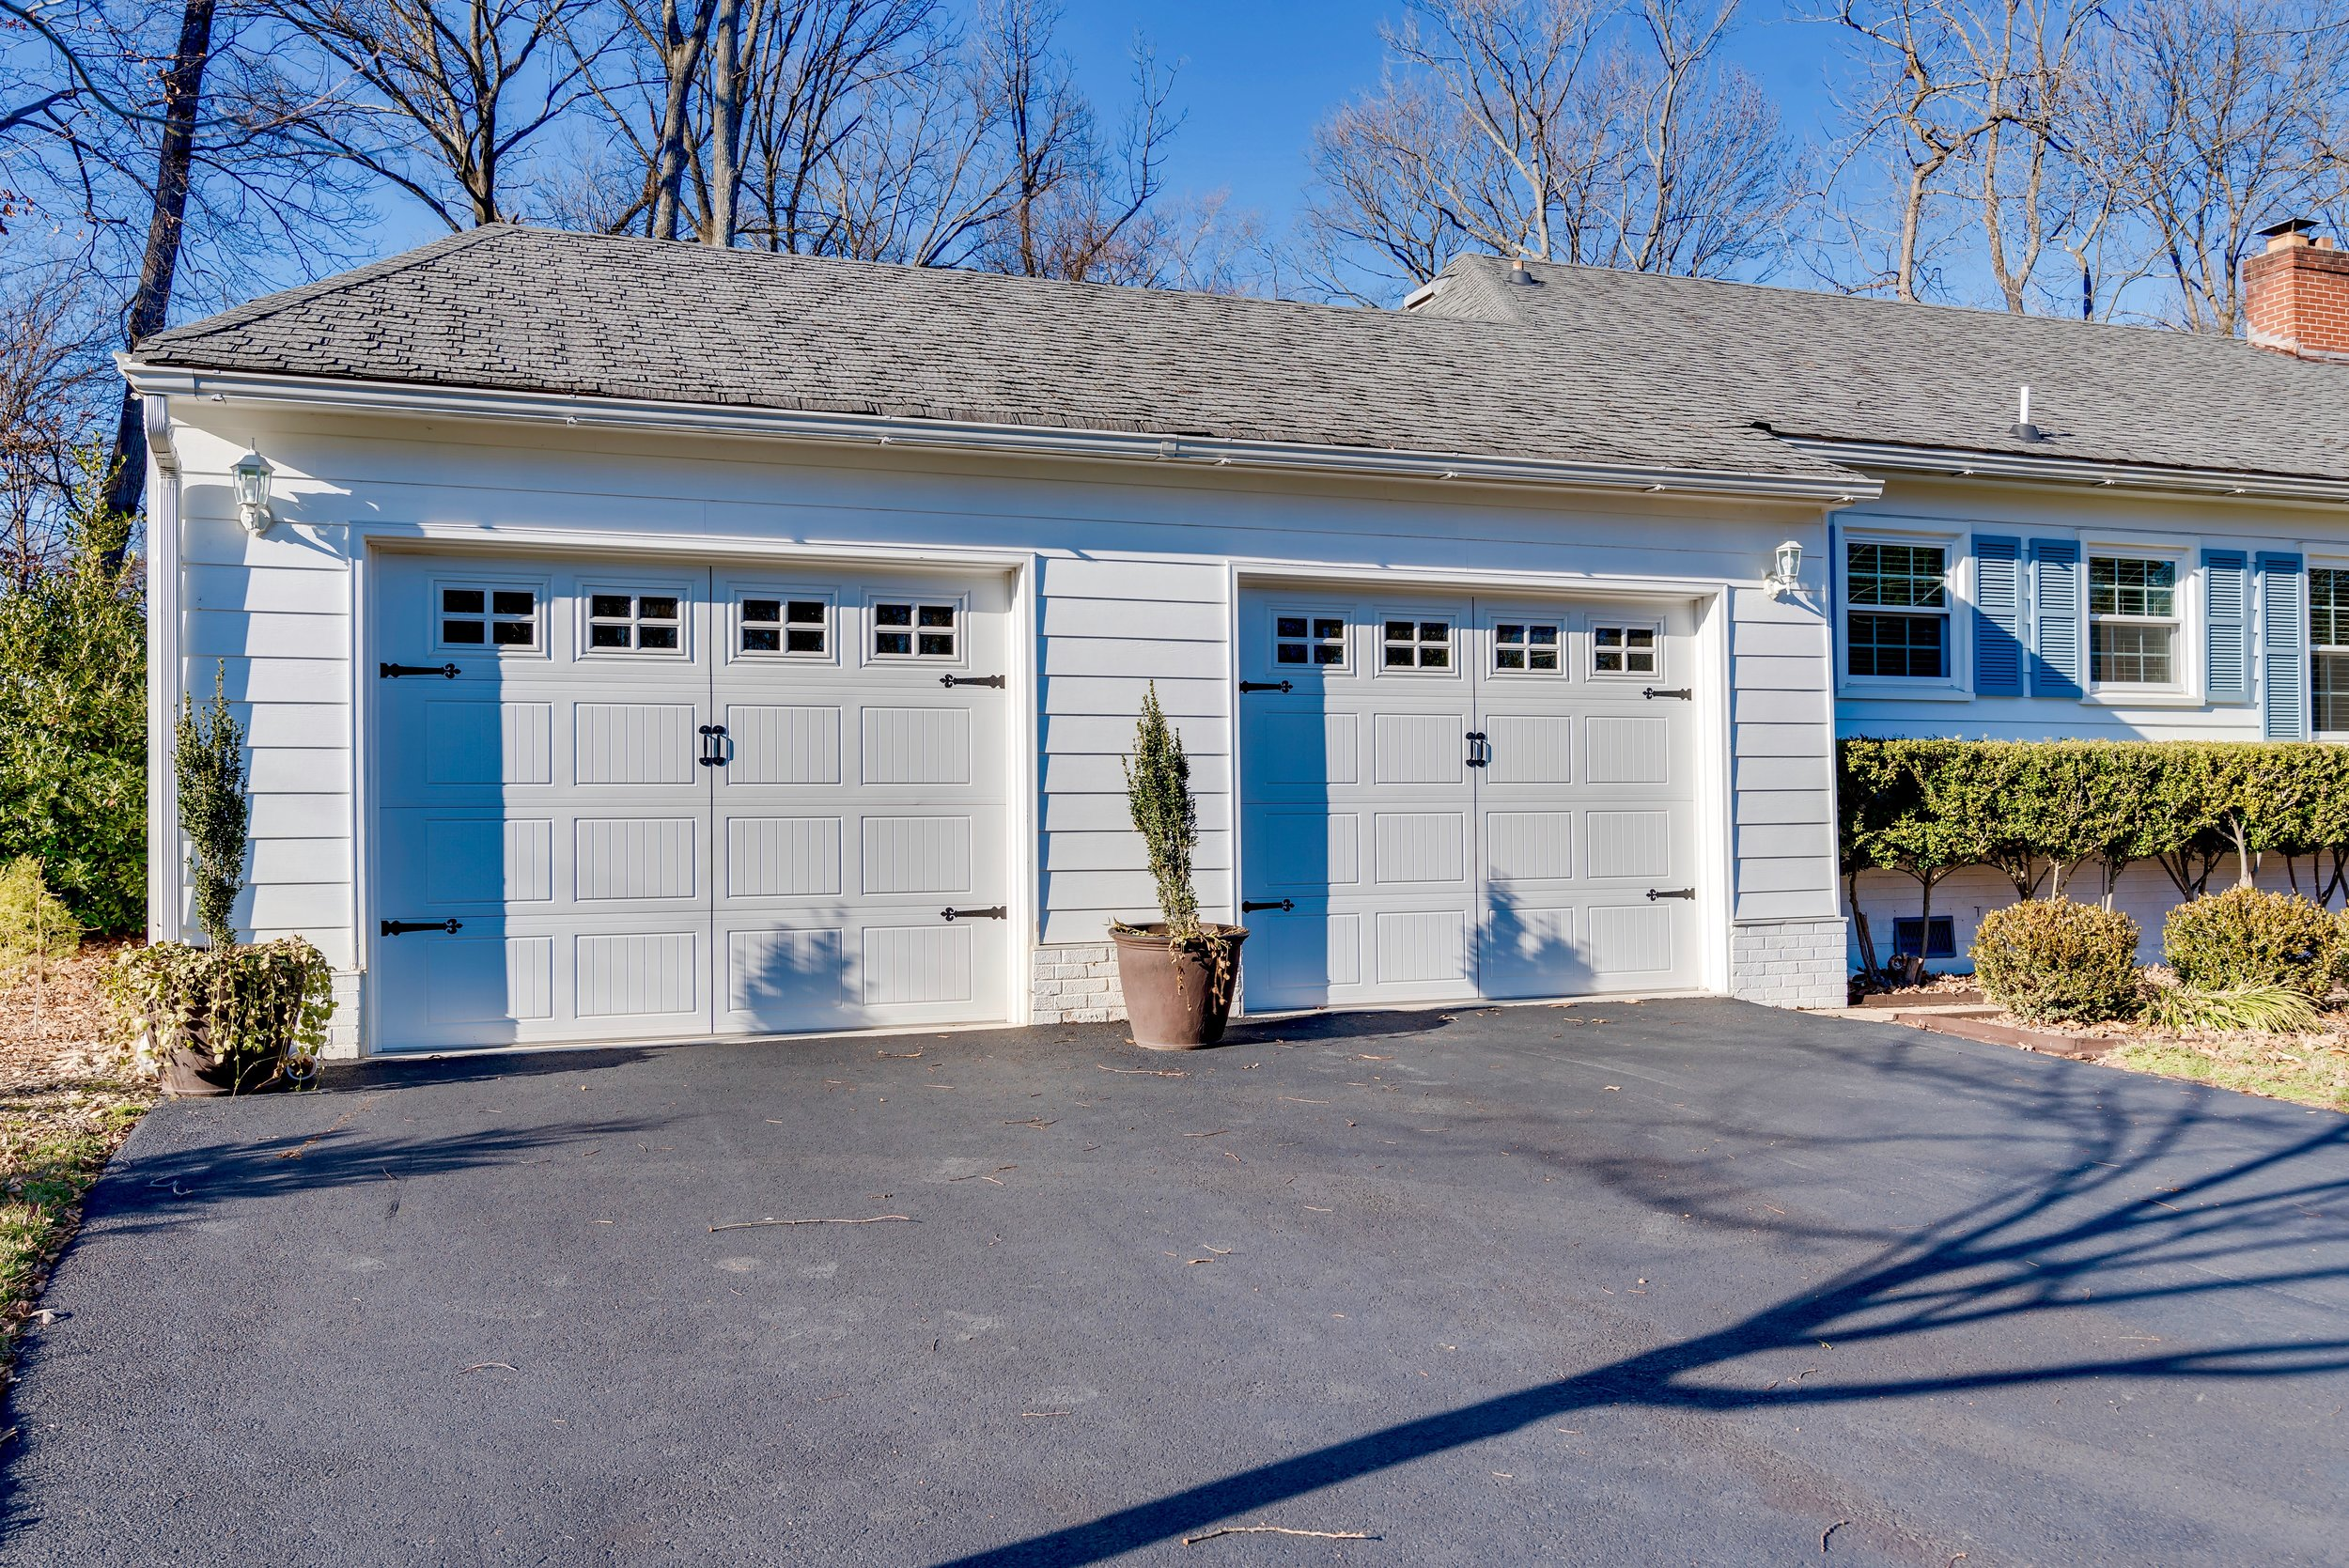 Carport converted into double garage